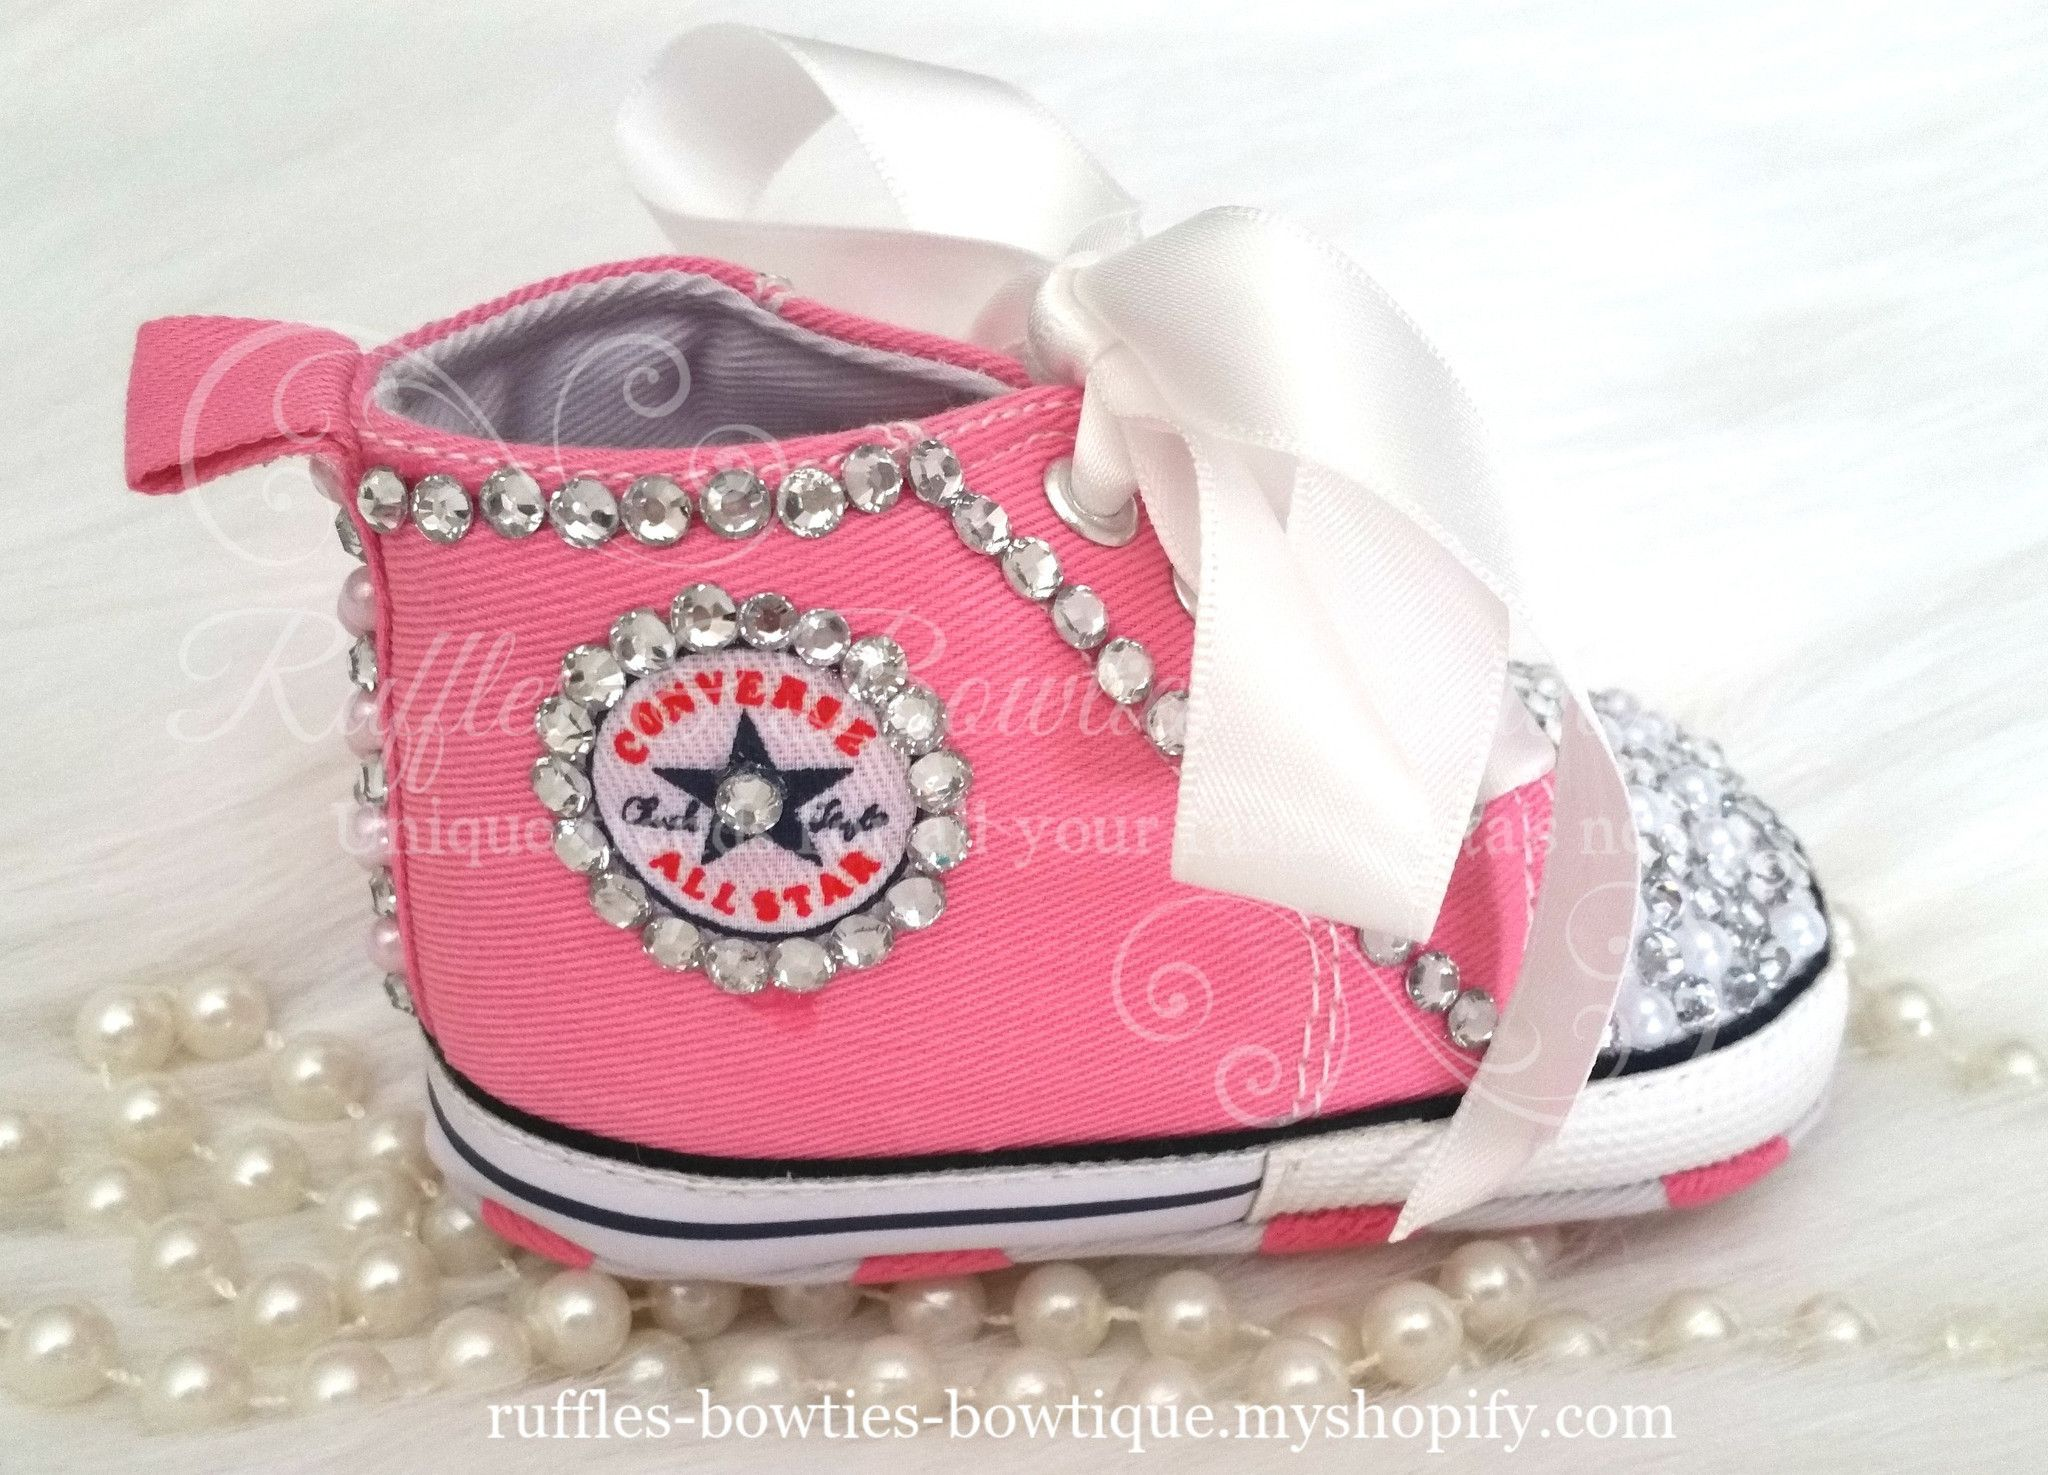 Crystal   Pearl Baby Converse High Tops - Crystal Shoes - Pre Walker Shoes  - Baby Girl Shoes - Wedding - Christening - Baptism - Baby - Hot Pink d0c6ee479